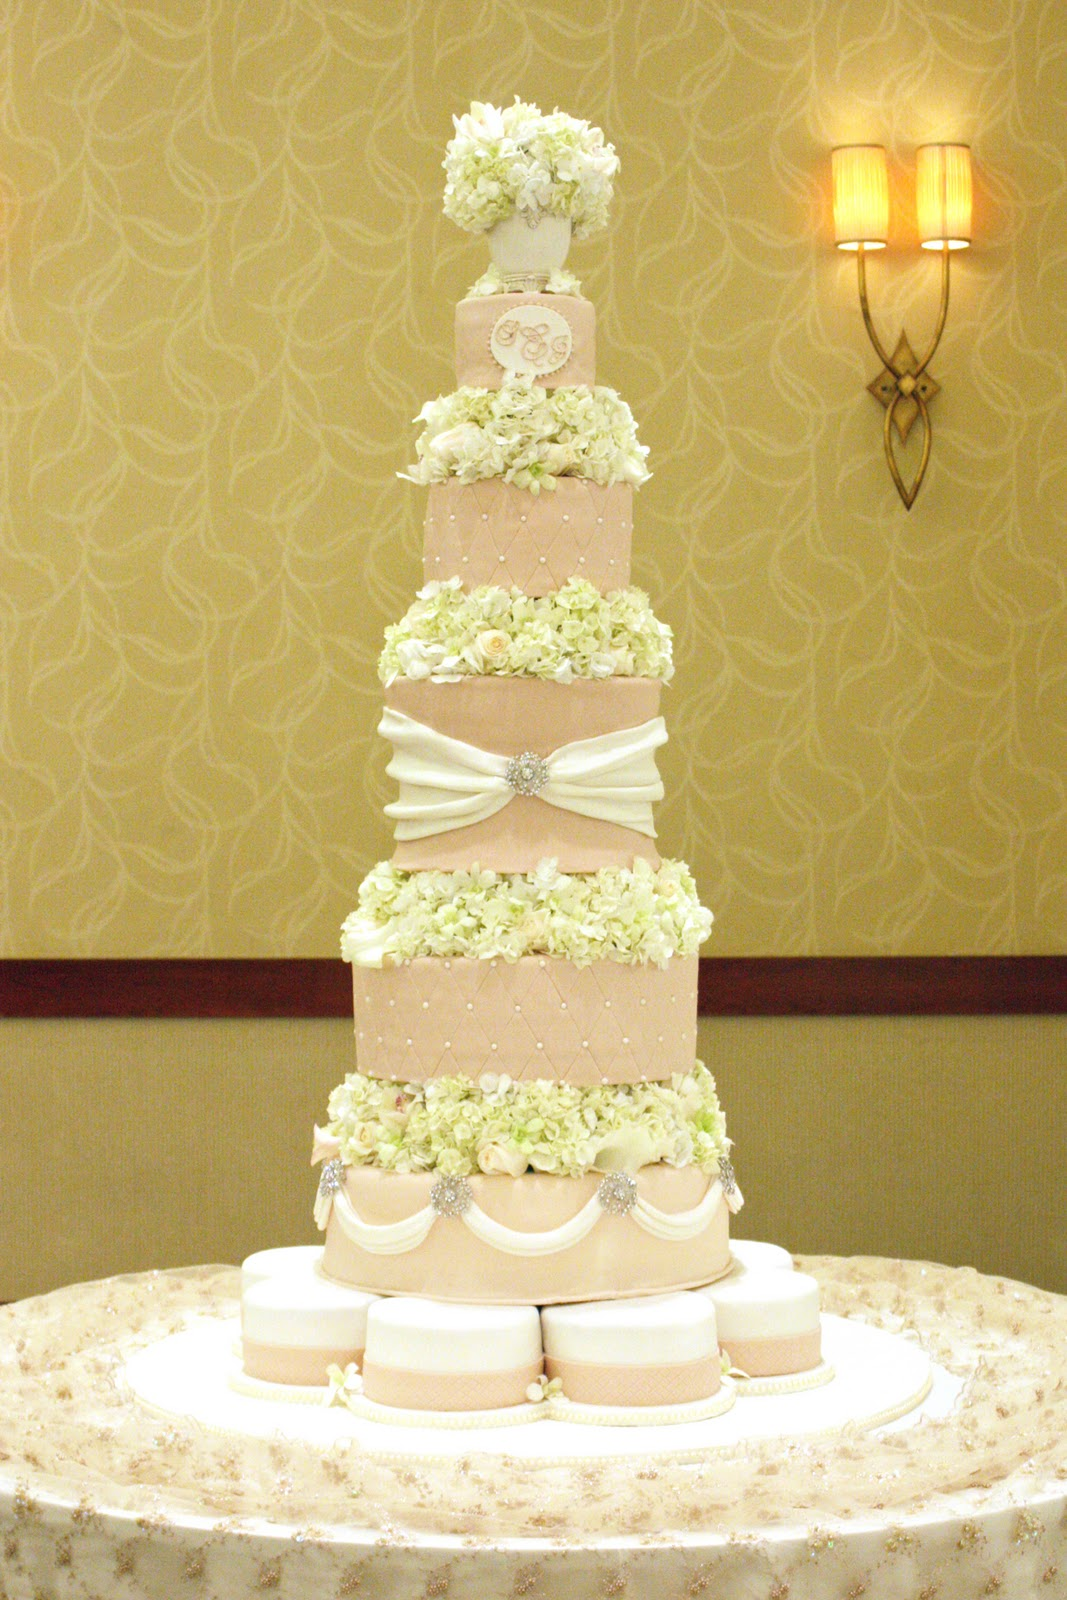 Pastries By Vreeke: TOP 10 CAKES OF 2010